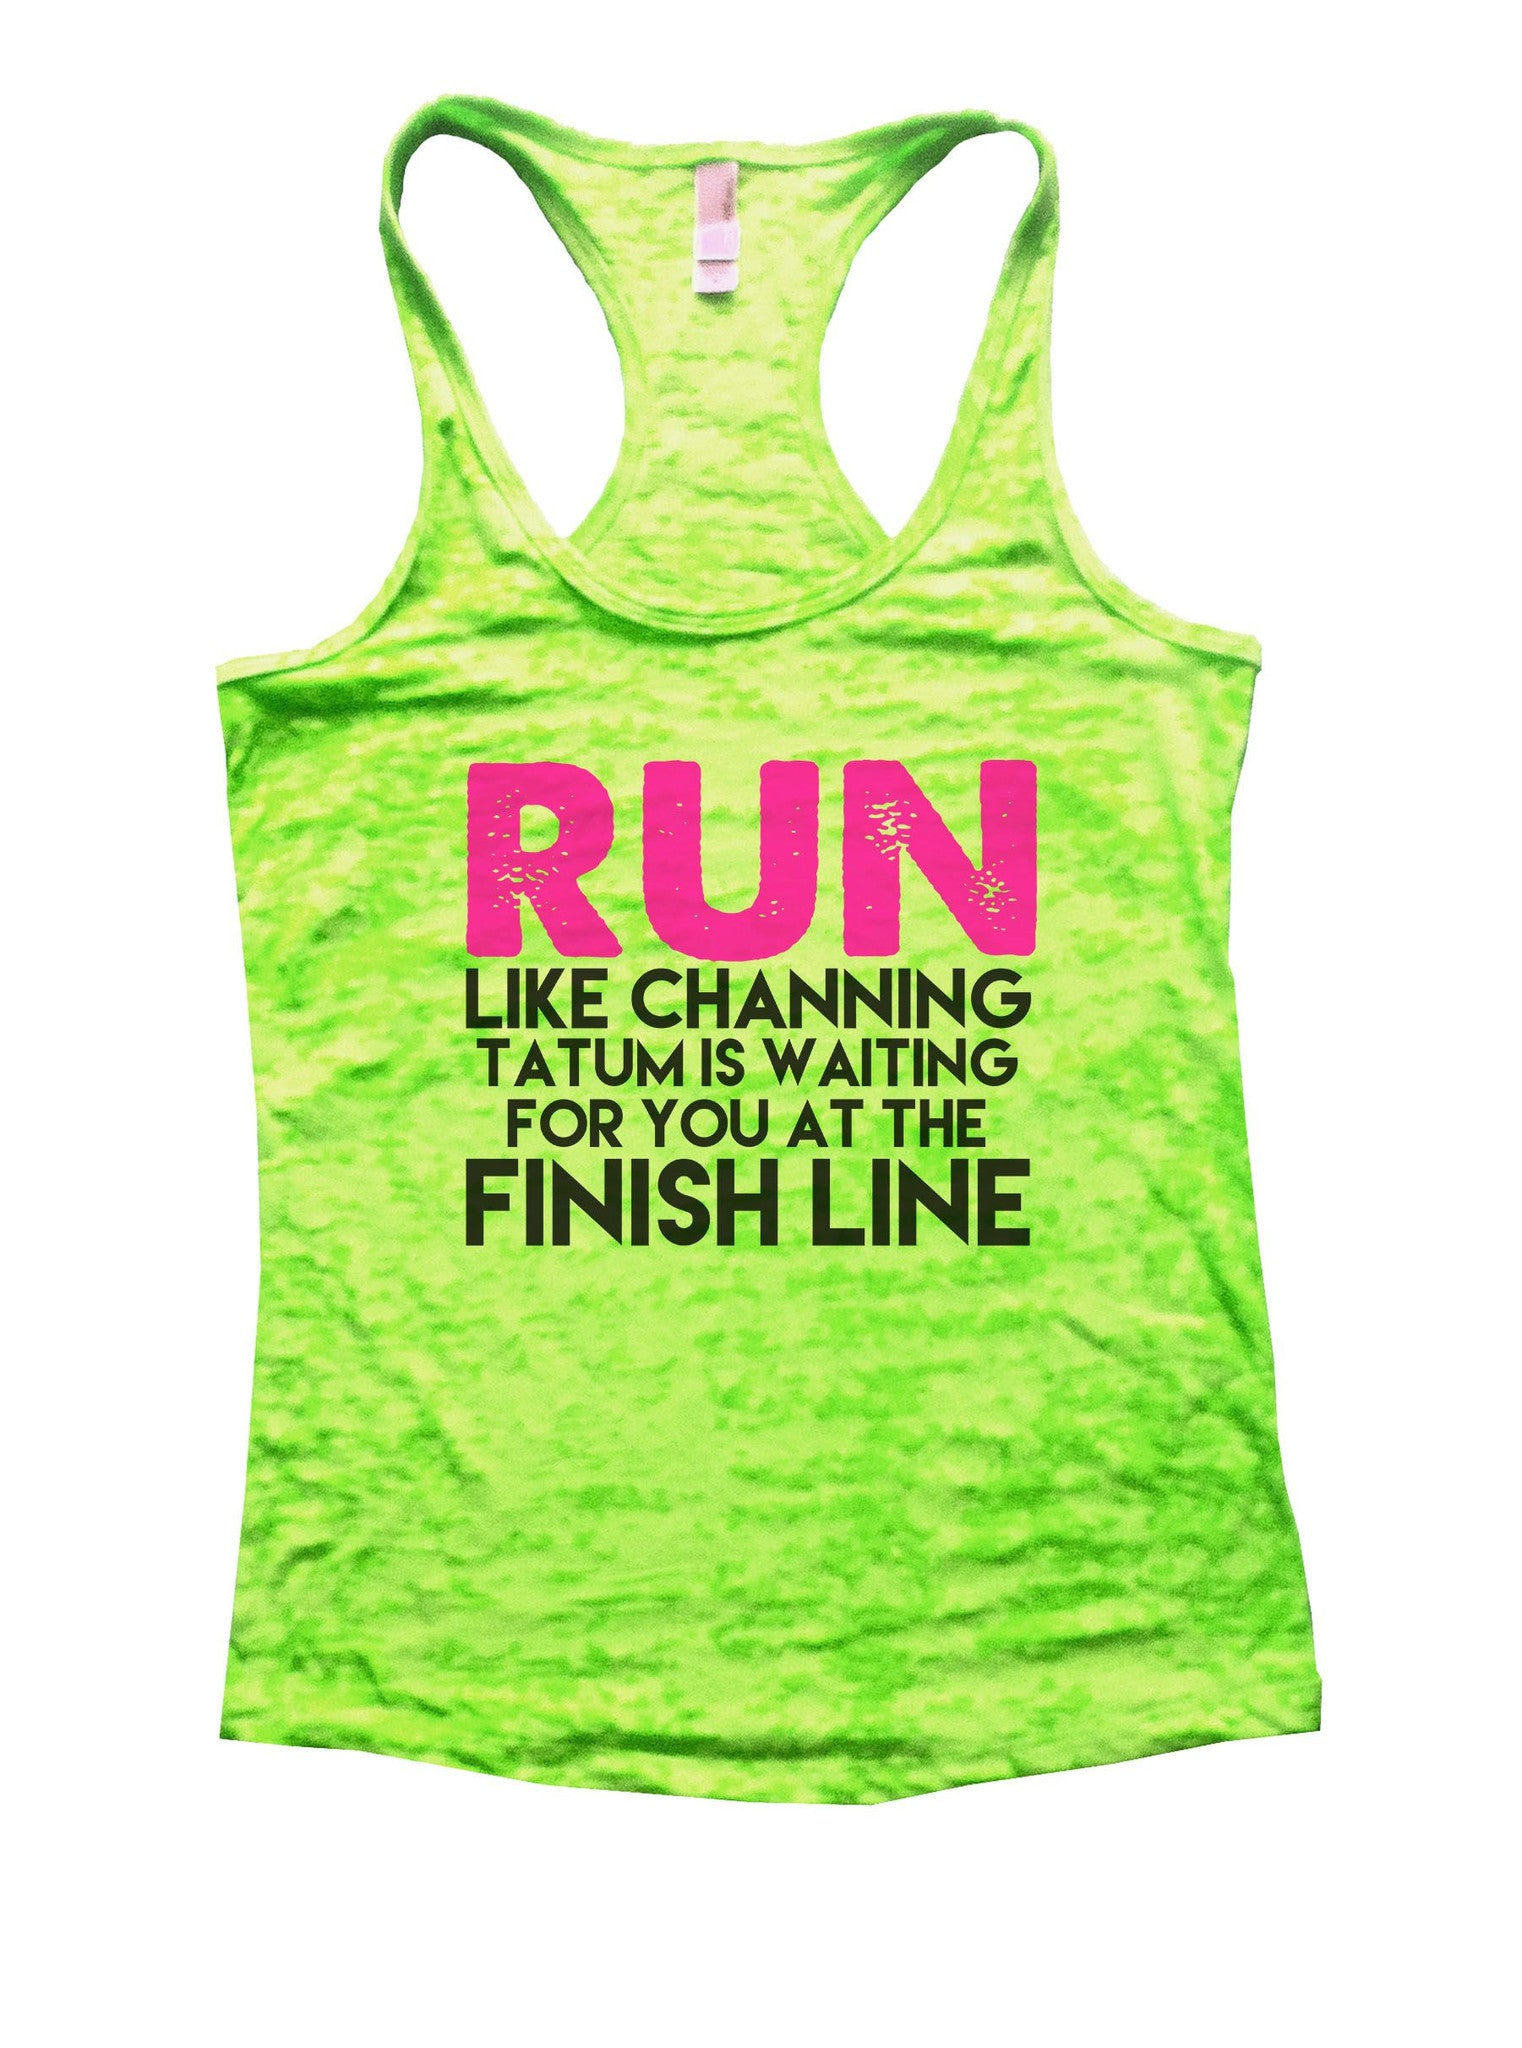 Run Like Channing Tatum Is Waiting For You At The Finish Line Burnout Tank Top By BurnoutTankTops.com - 872 - Funny Shirts Tank Tops Burnouts and Triblends  - 2